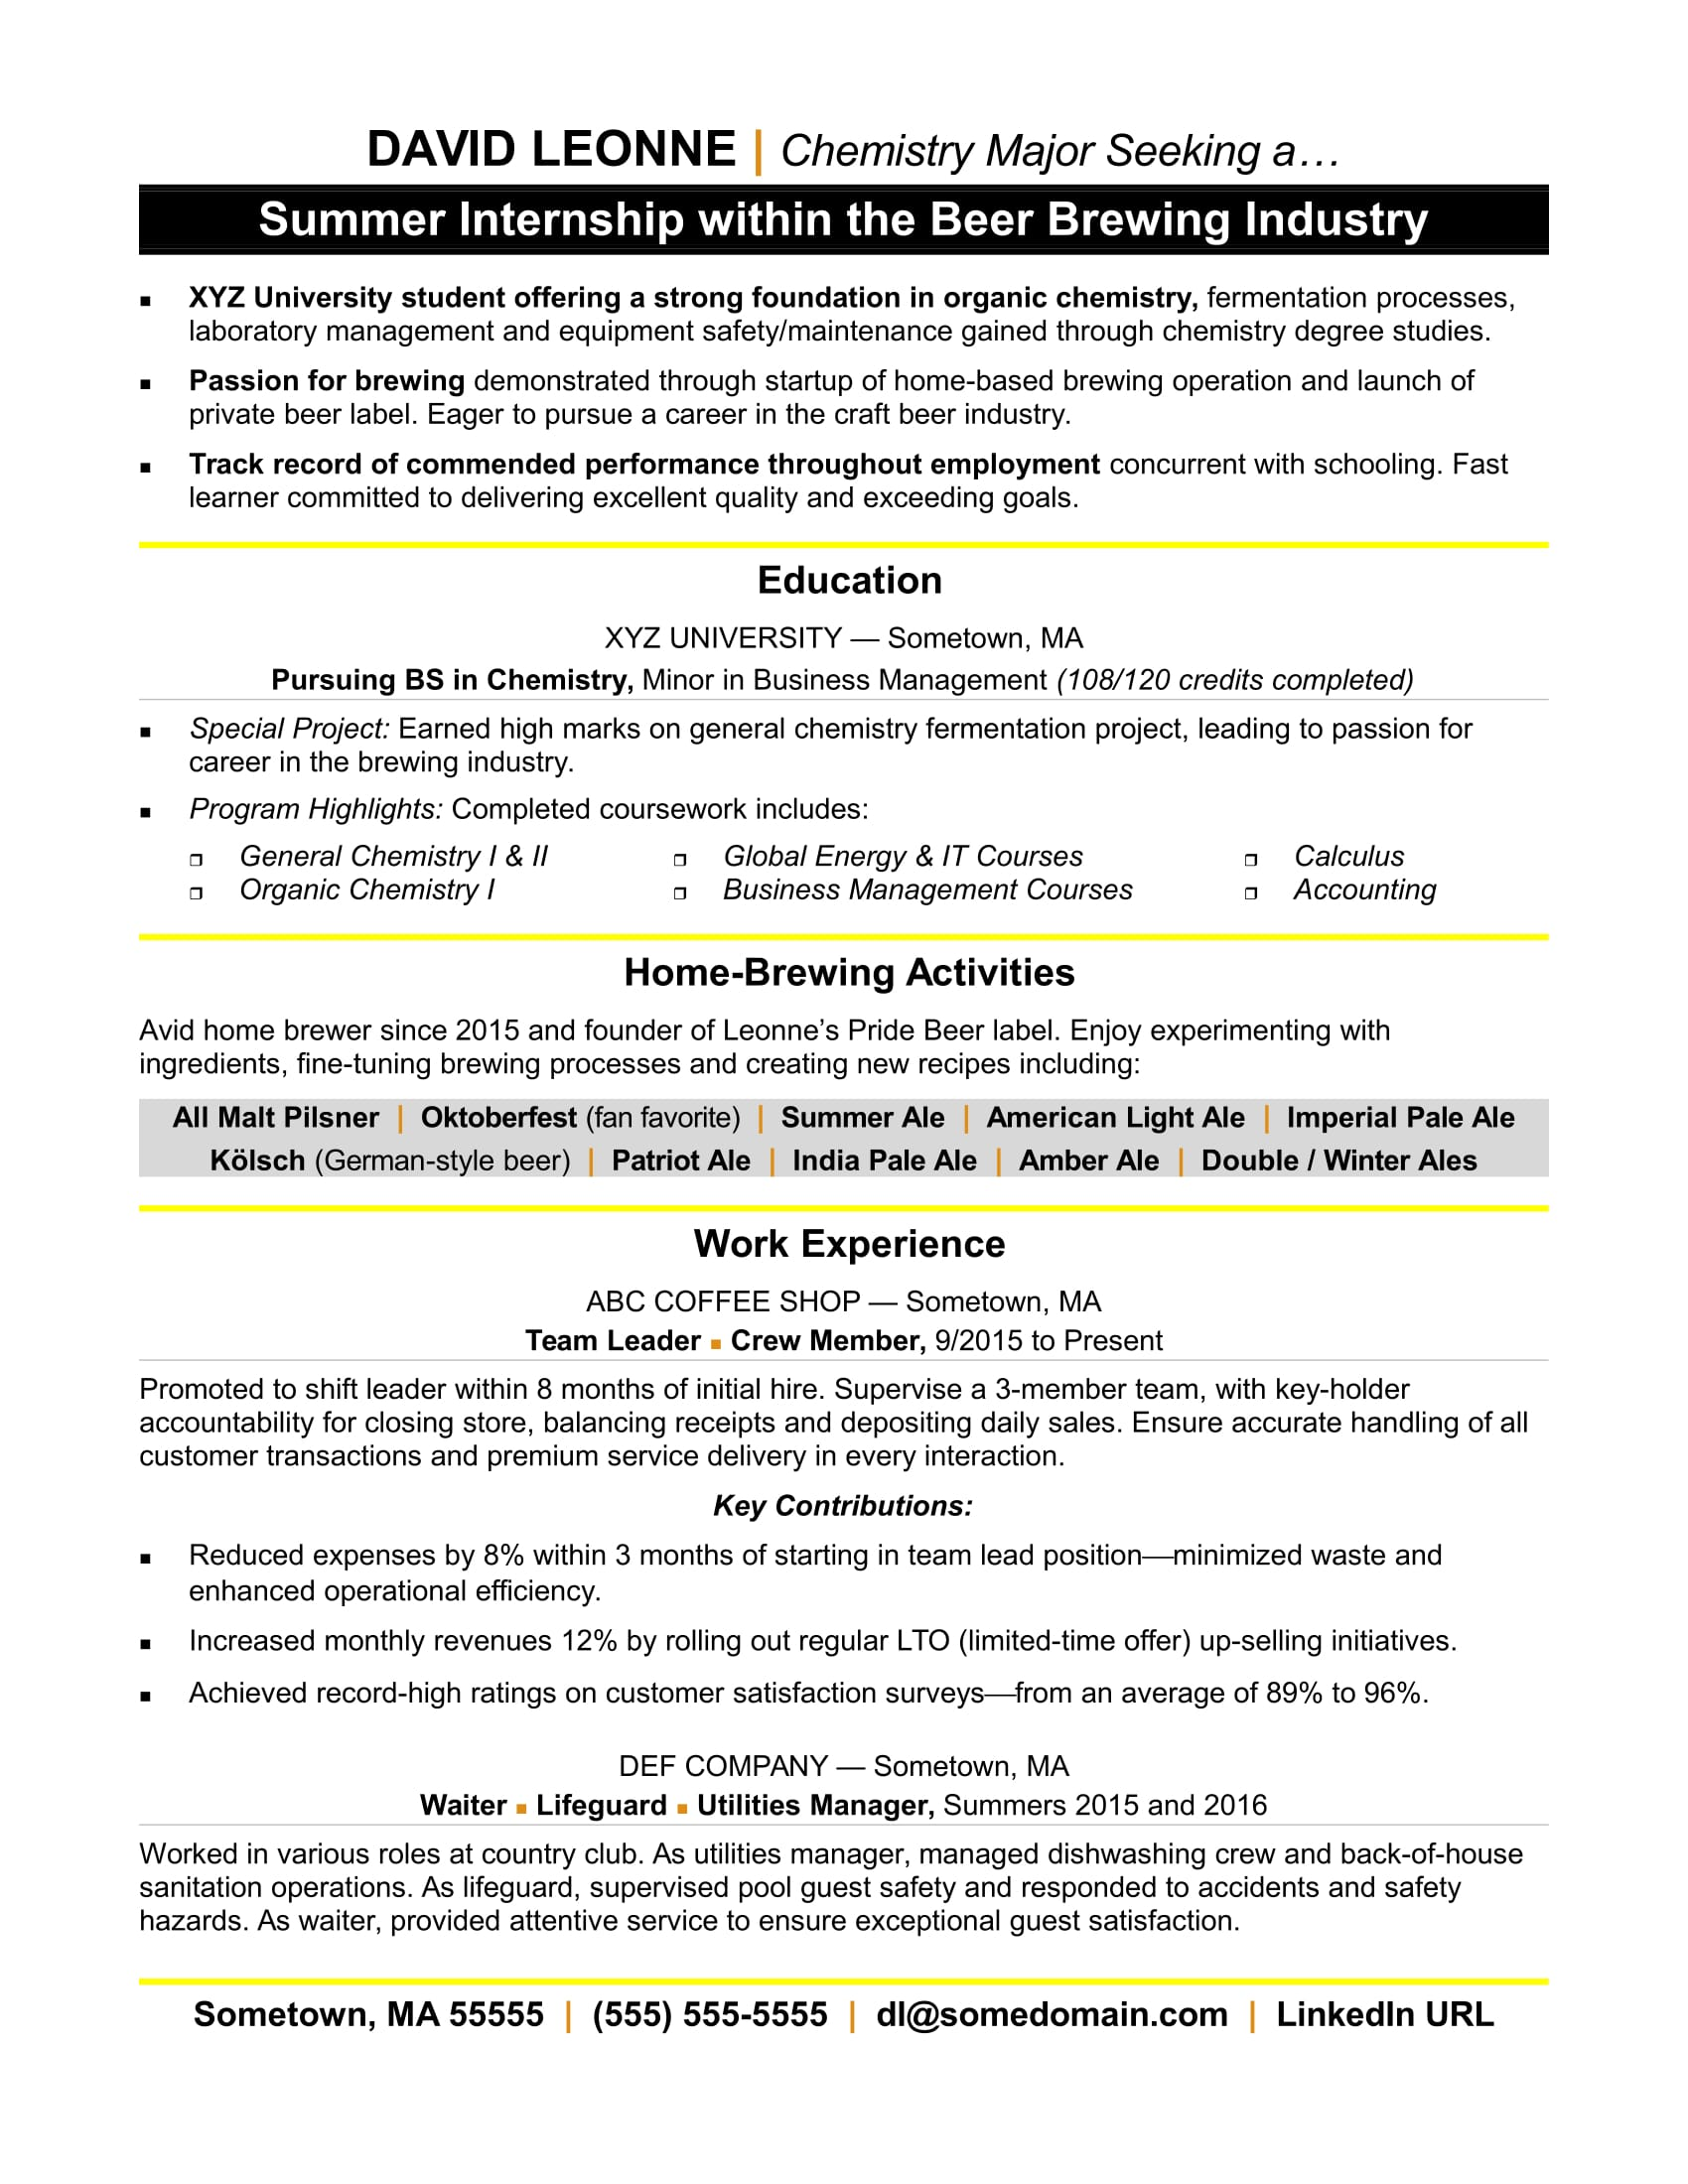 resume for internship monster college student sample import export executive entry level Resume College Student Sample Resume For Internship